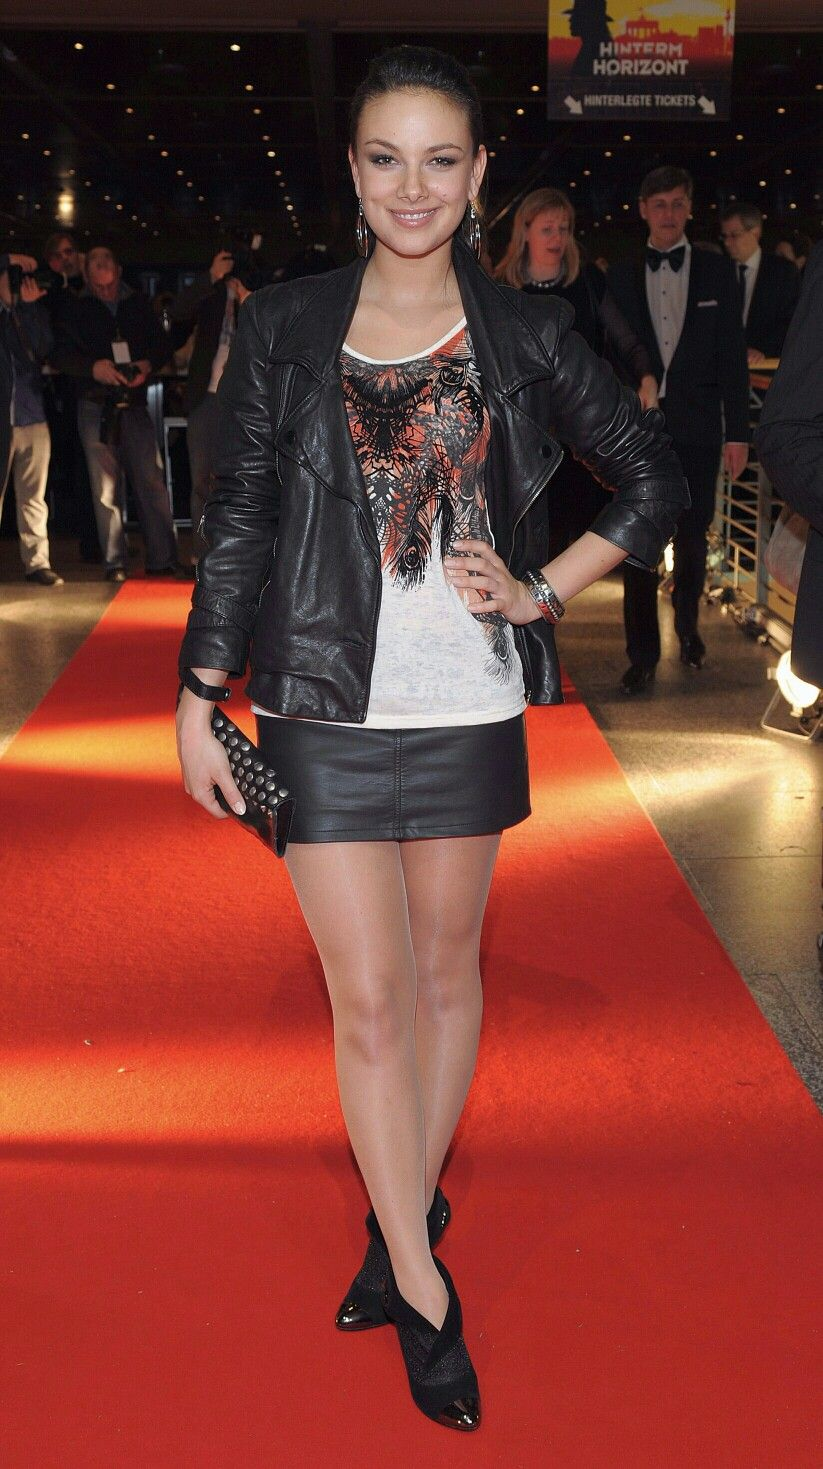 Janina Uhse in tights / pantyhose   paqntyhose   Pinterest